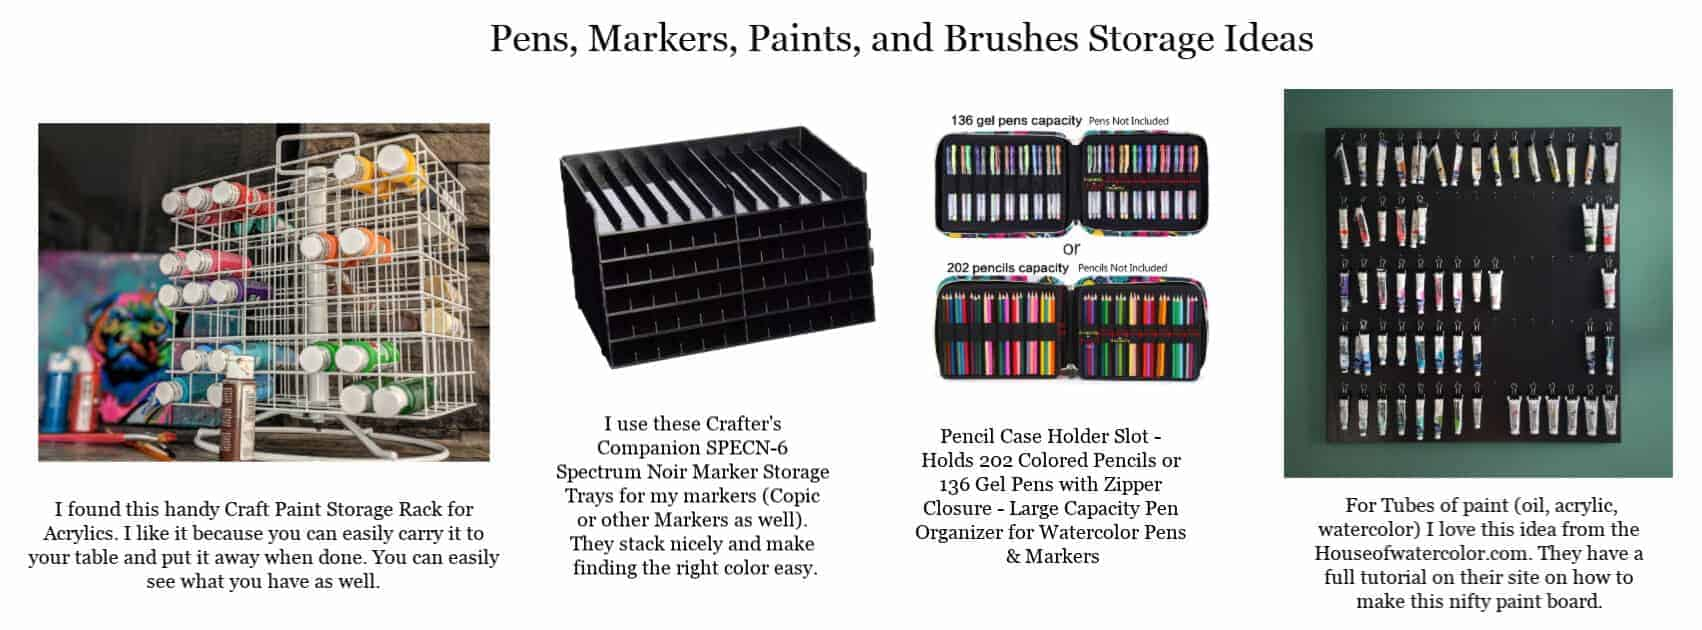 Pens, Markers, Paints, Paper and Brushes Organization